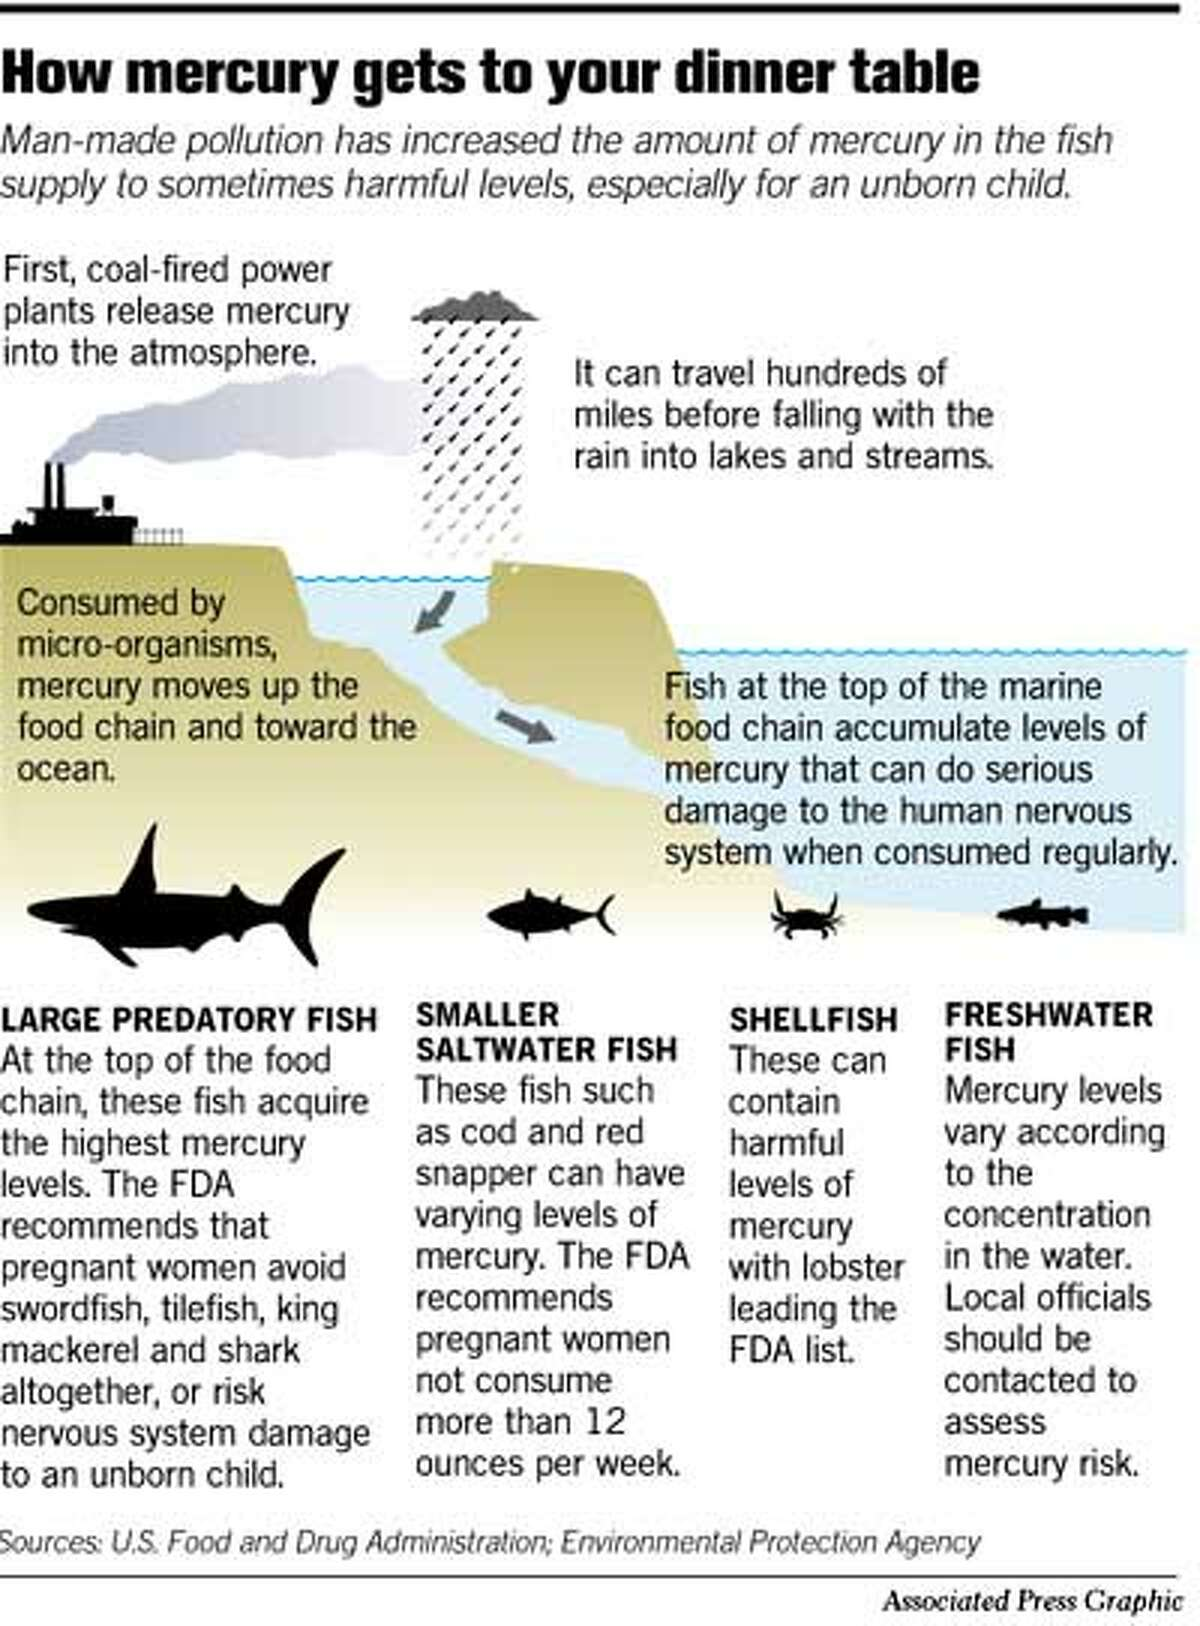 How Mercury Gets to Your Dinner Table. Associated Press Graphic